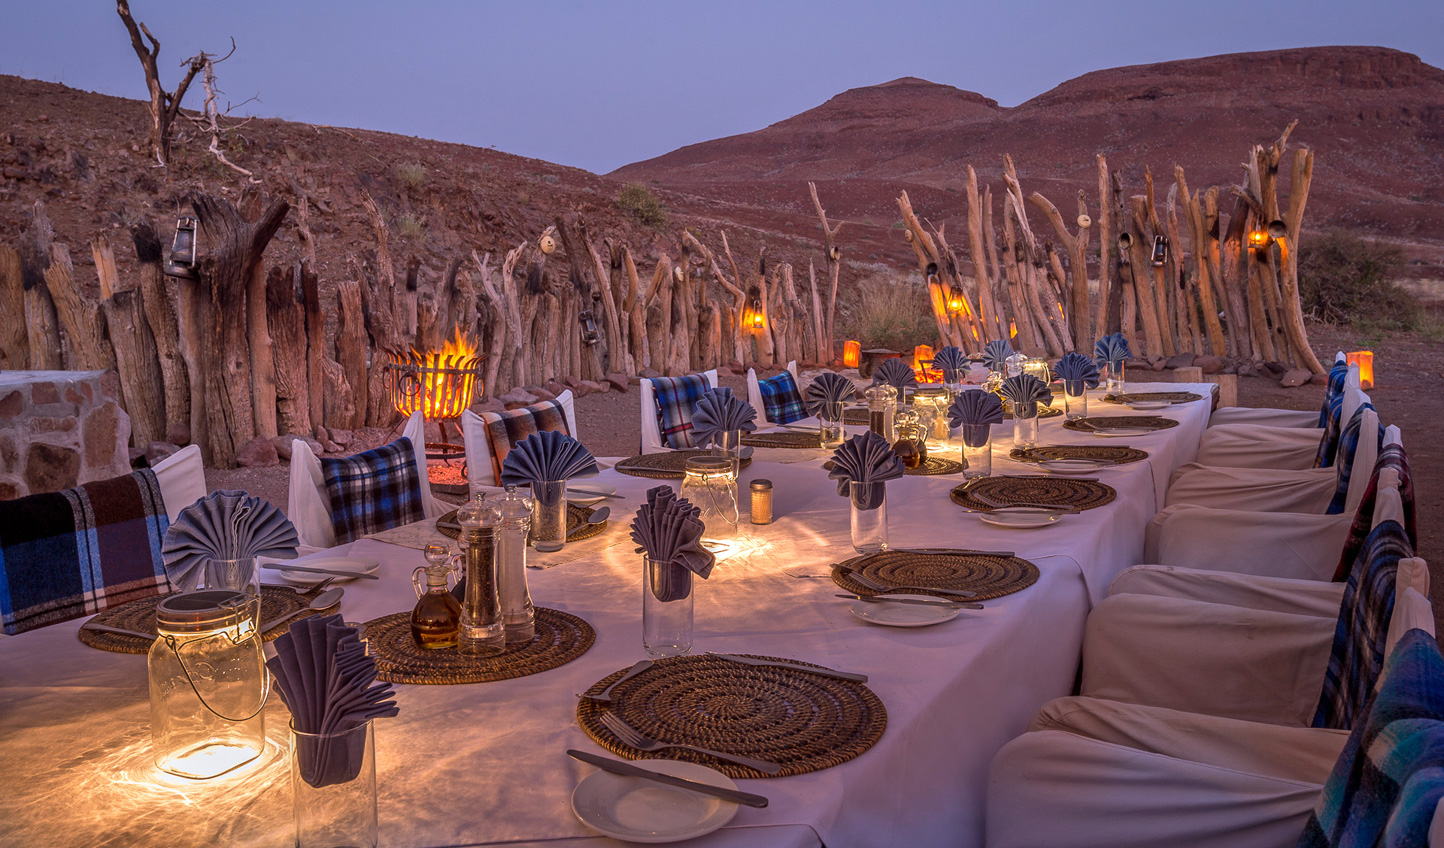 Dine beneath the wide open night skies